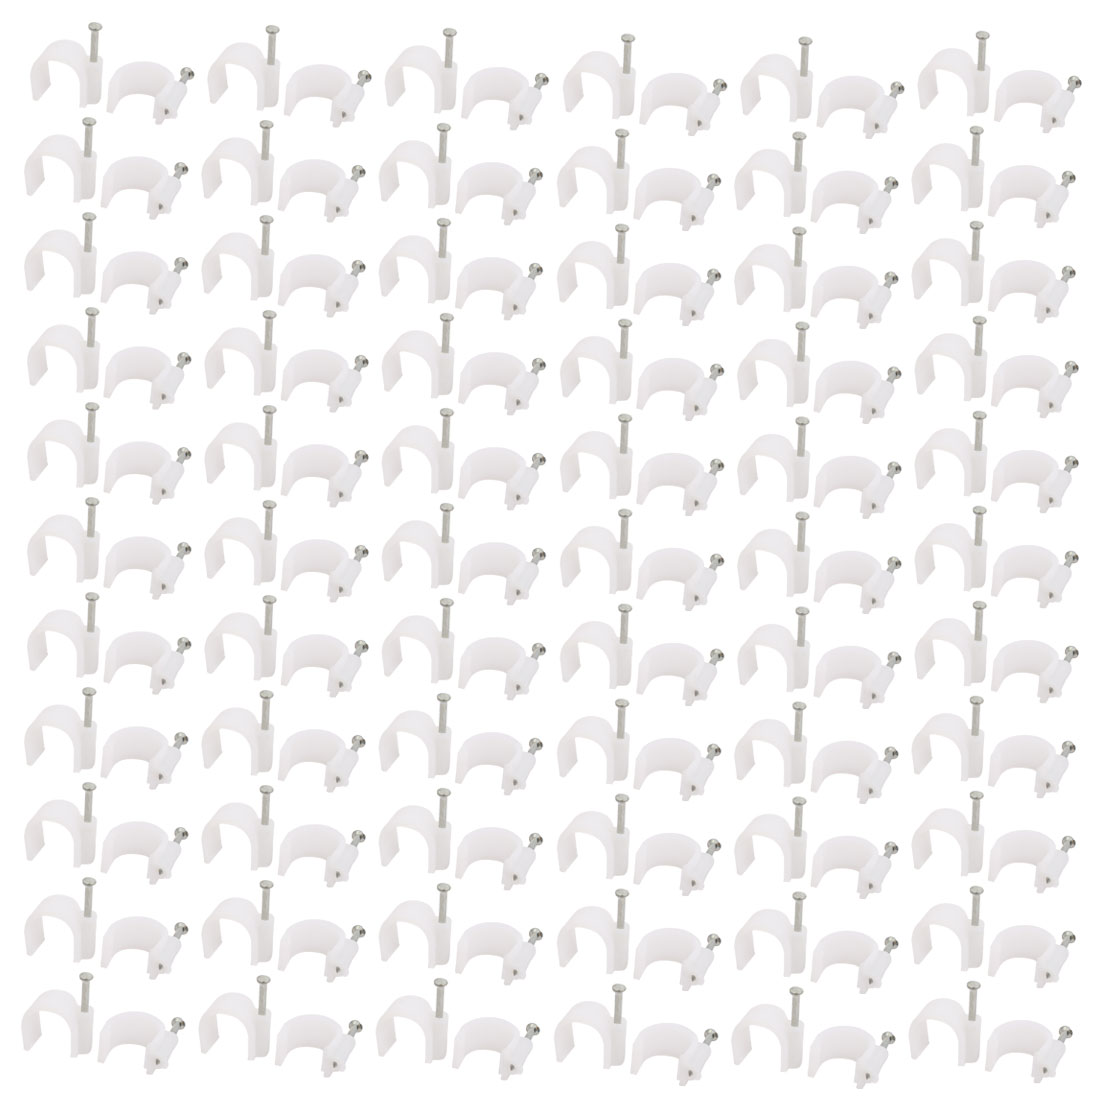 14mm Diameter Round Cable Wire Clips Fastener White w Fixing Nails 200Pcs